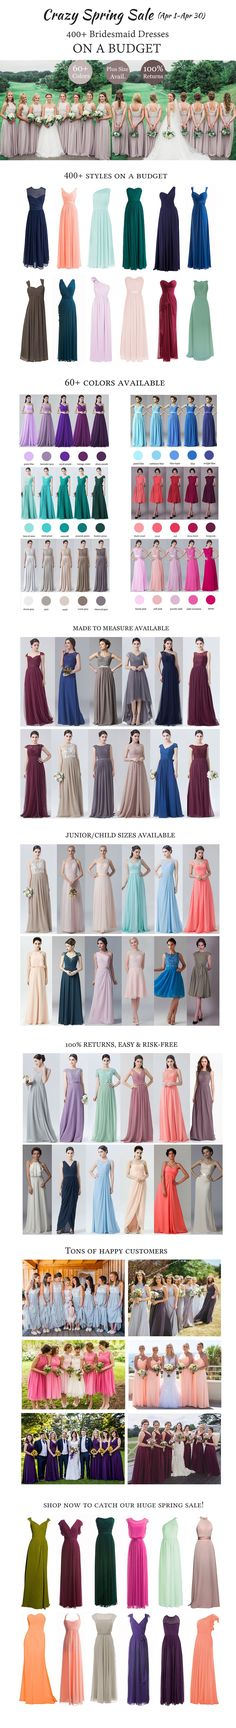 Crazy Summer Sale on ALL FHFH bridesmaid dresses! ONLY IN AUGUST!